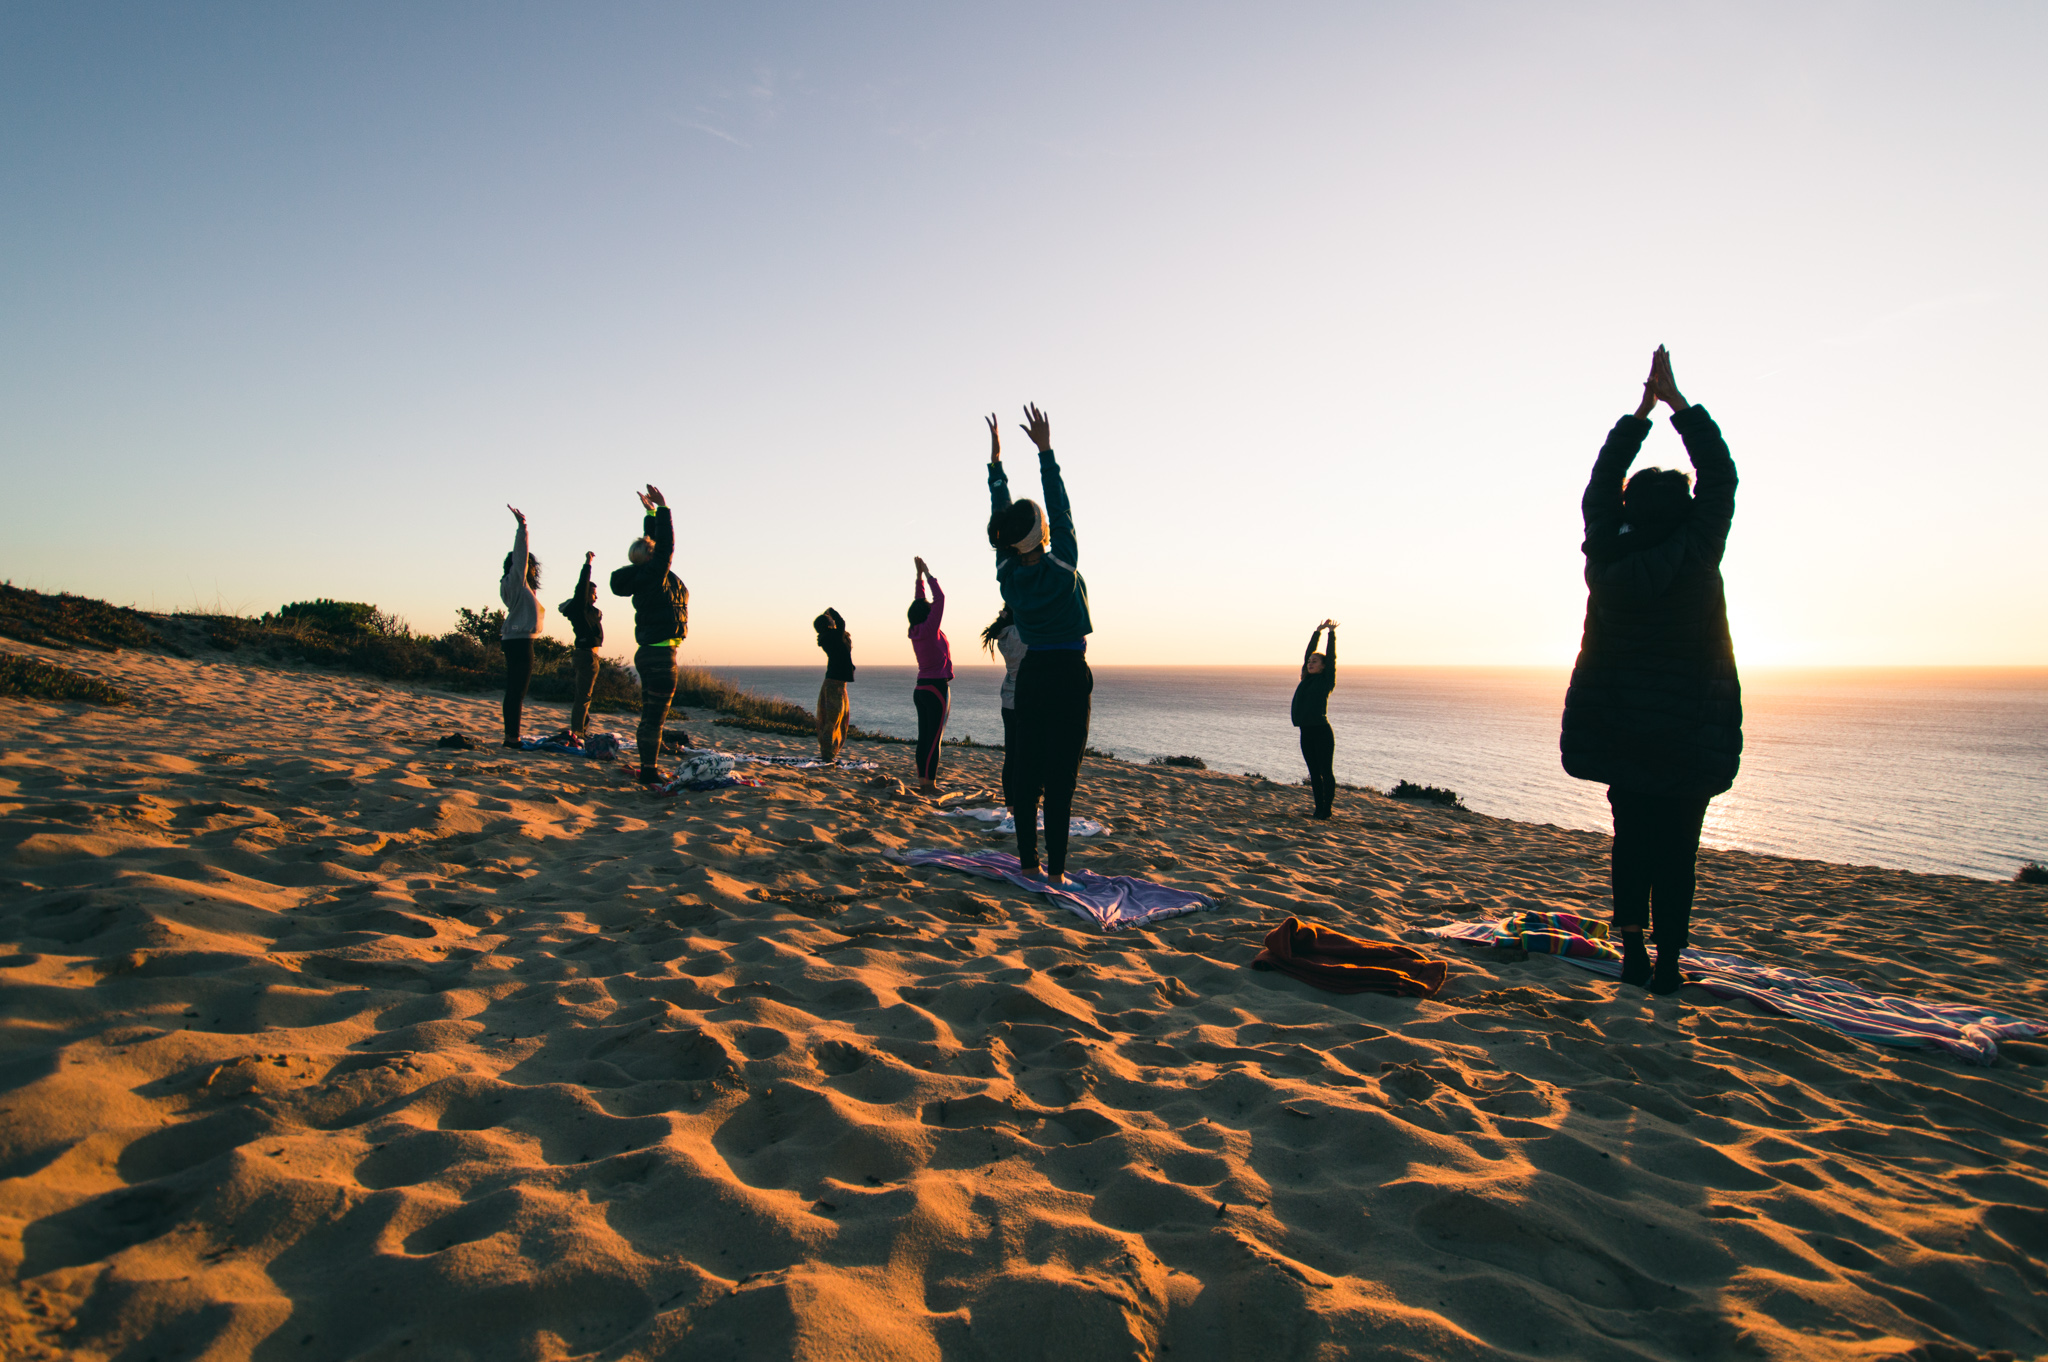 FOREST WALK & ZEN SUNSET AT THE BEACH  Costa da Caparica Fossil Cliff FROM 55,00€  Fully enhance the healing benefits of nature through the ancient practices of Yoga and mindfulness. Engage in an unforgettable and therapeutic experience in an awe-inspiring coastal forest.